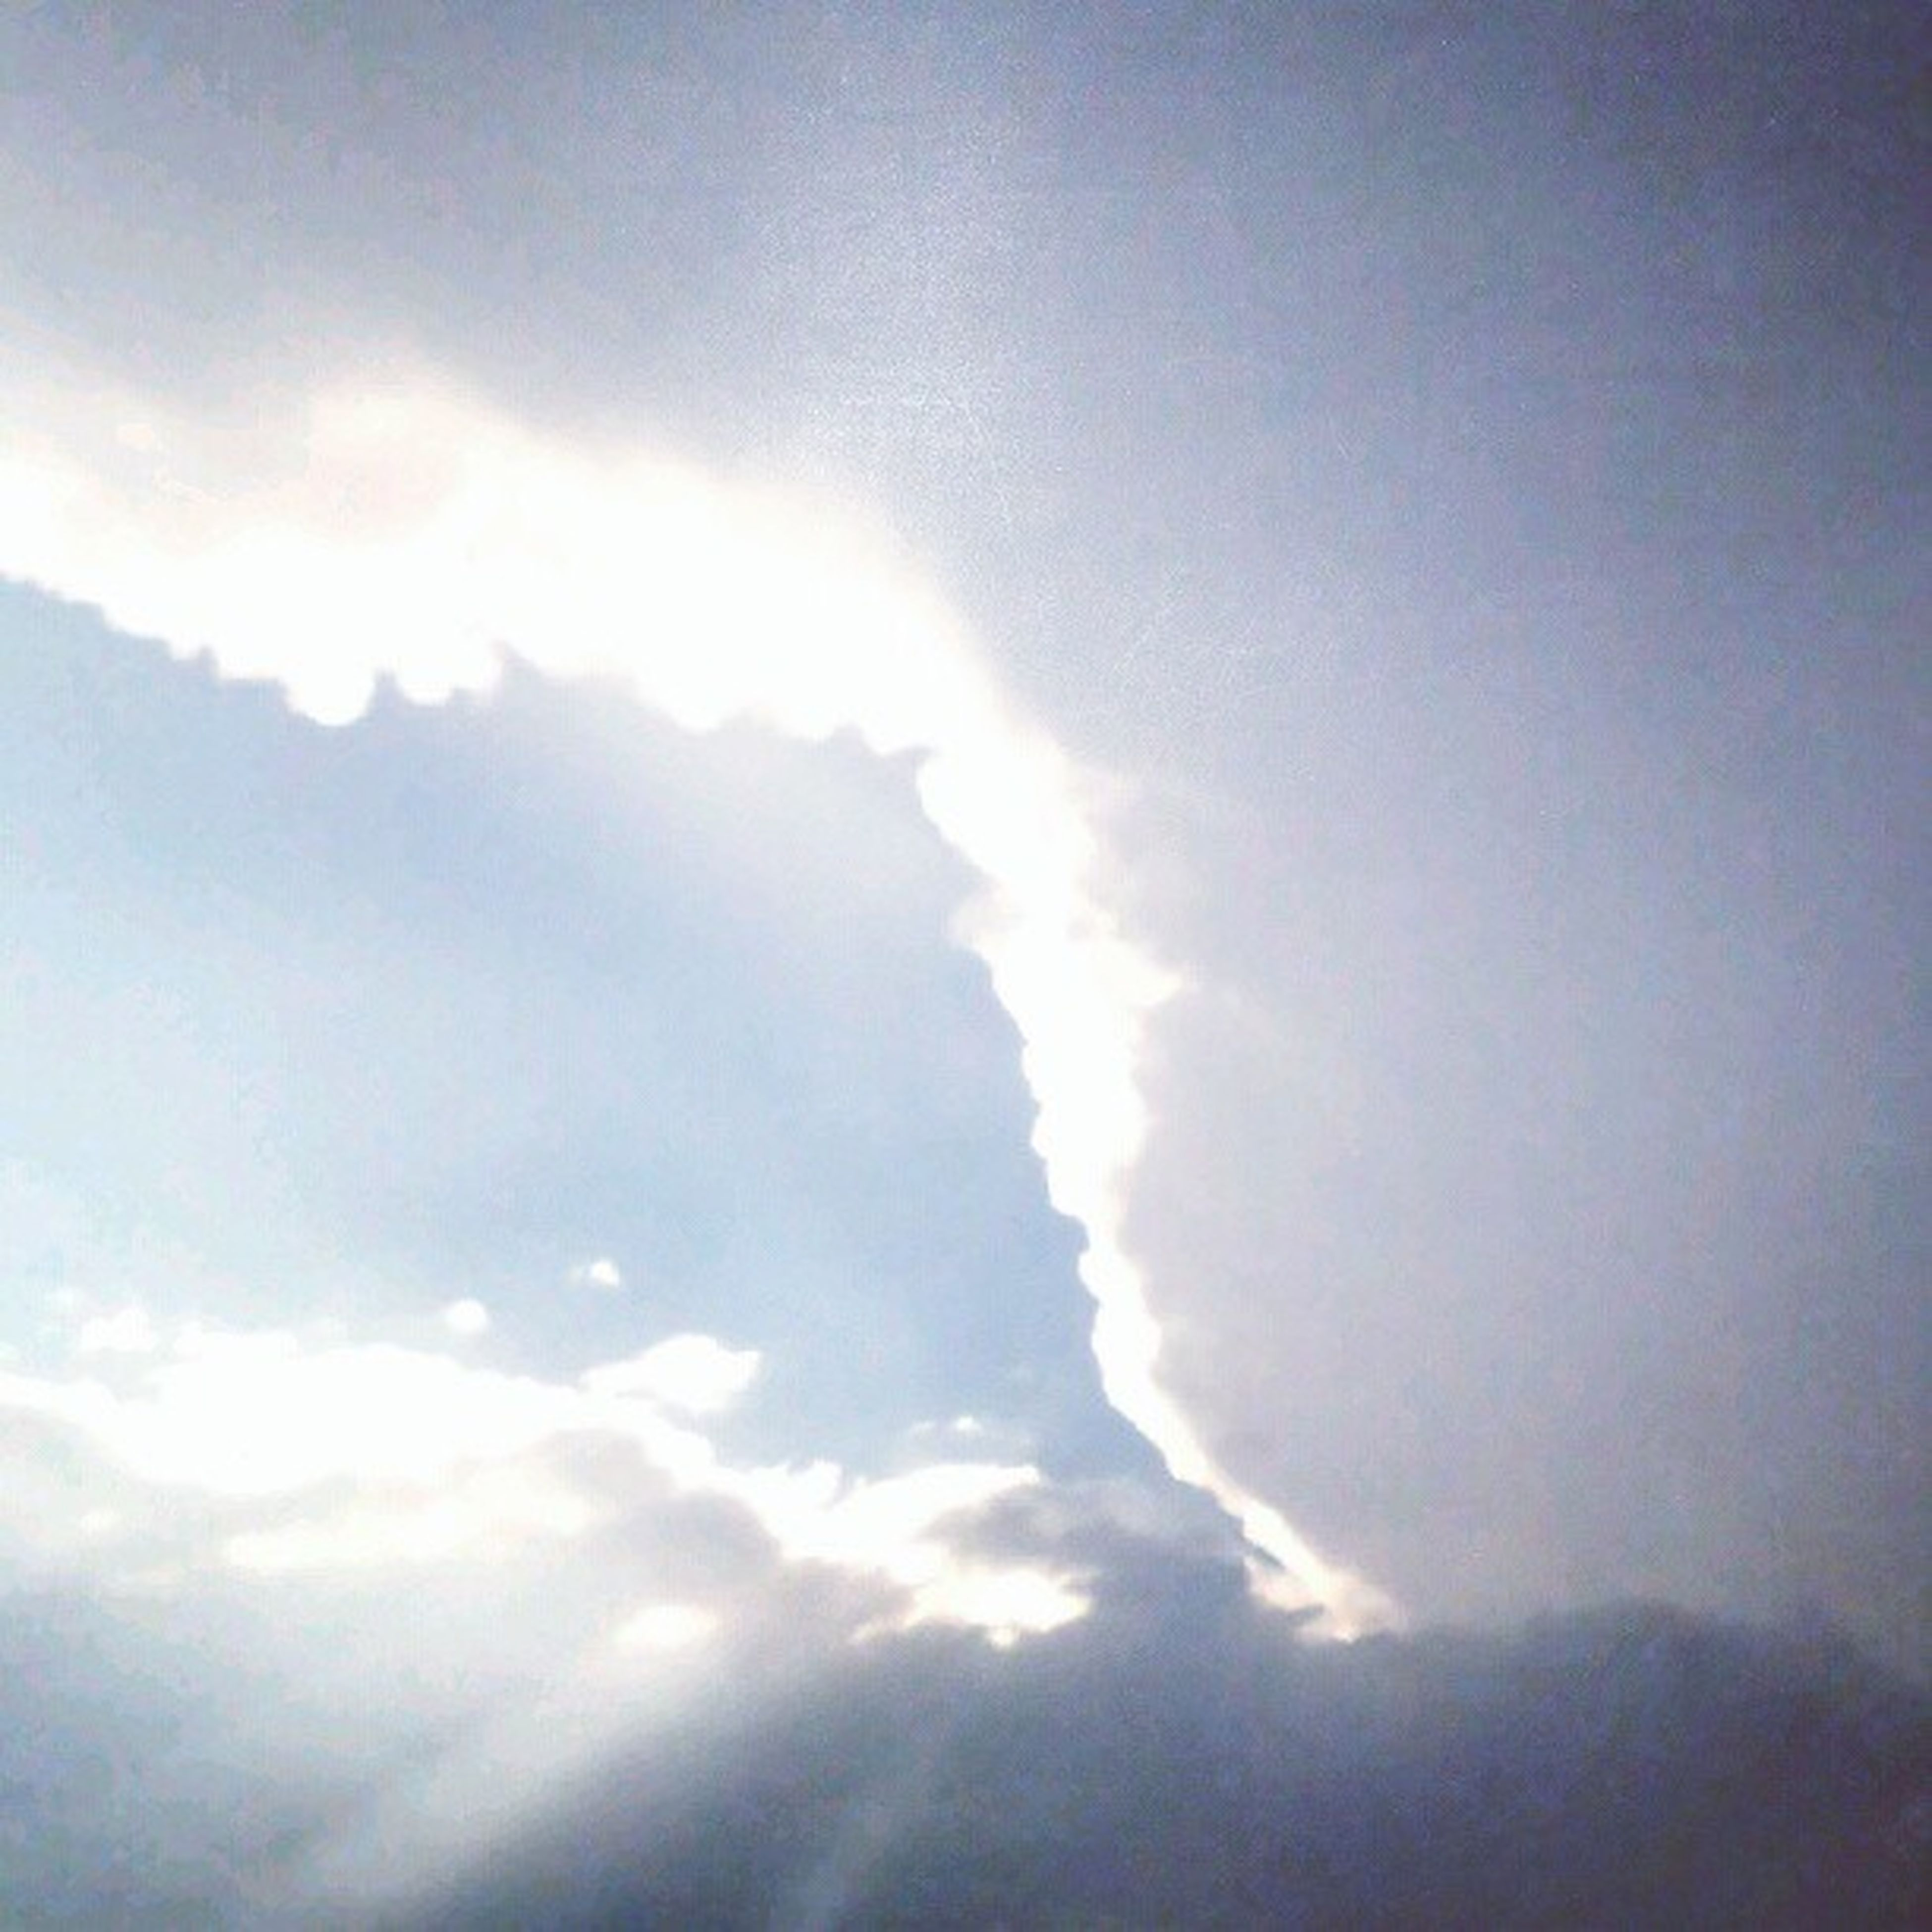 sky, cloud - sky, low angle view, beauty in nature, scenics, sky only, cloudy, tranquility, cloudscape, tranquil scene, nature, cloud, weather, idyllic, sunbeam, outdoors, overcast, sunlight, majestic, blue